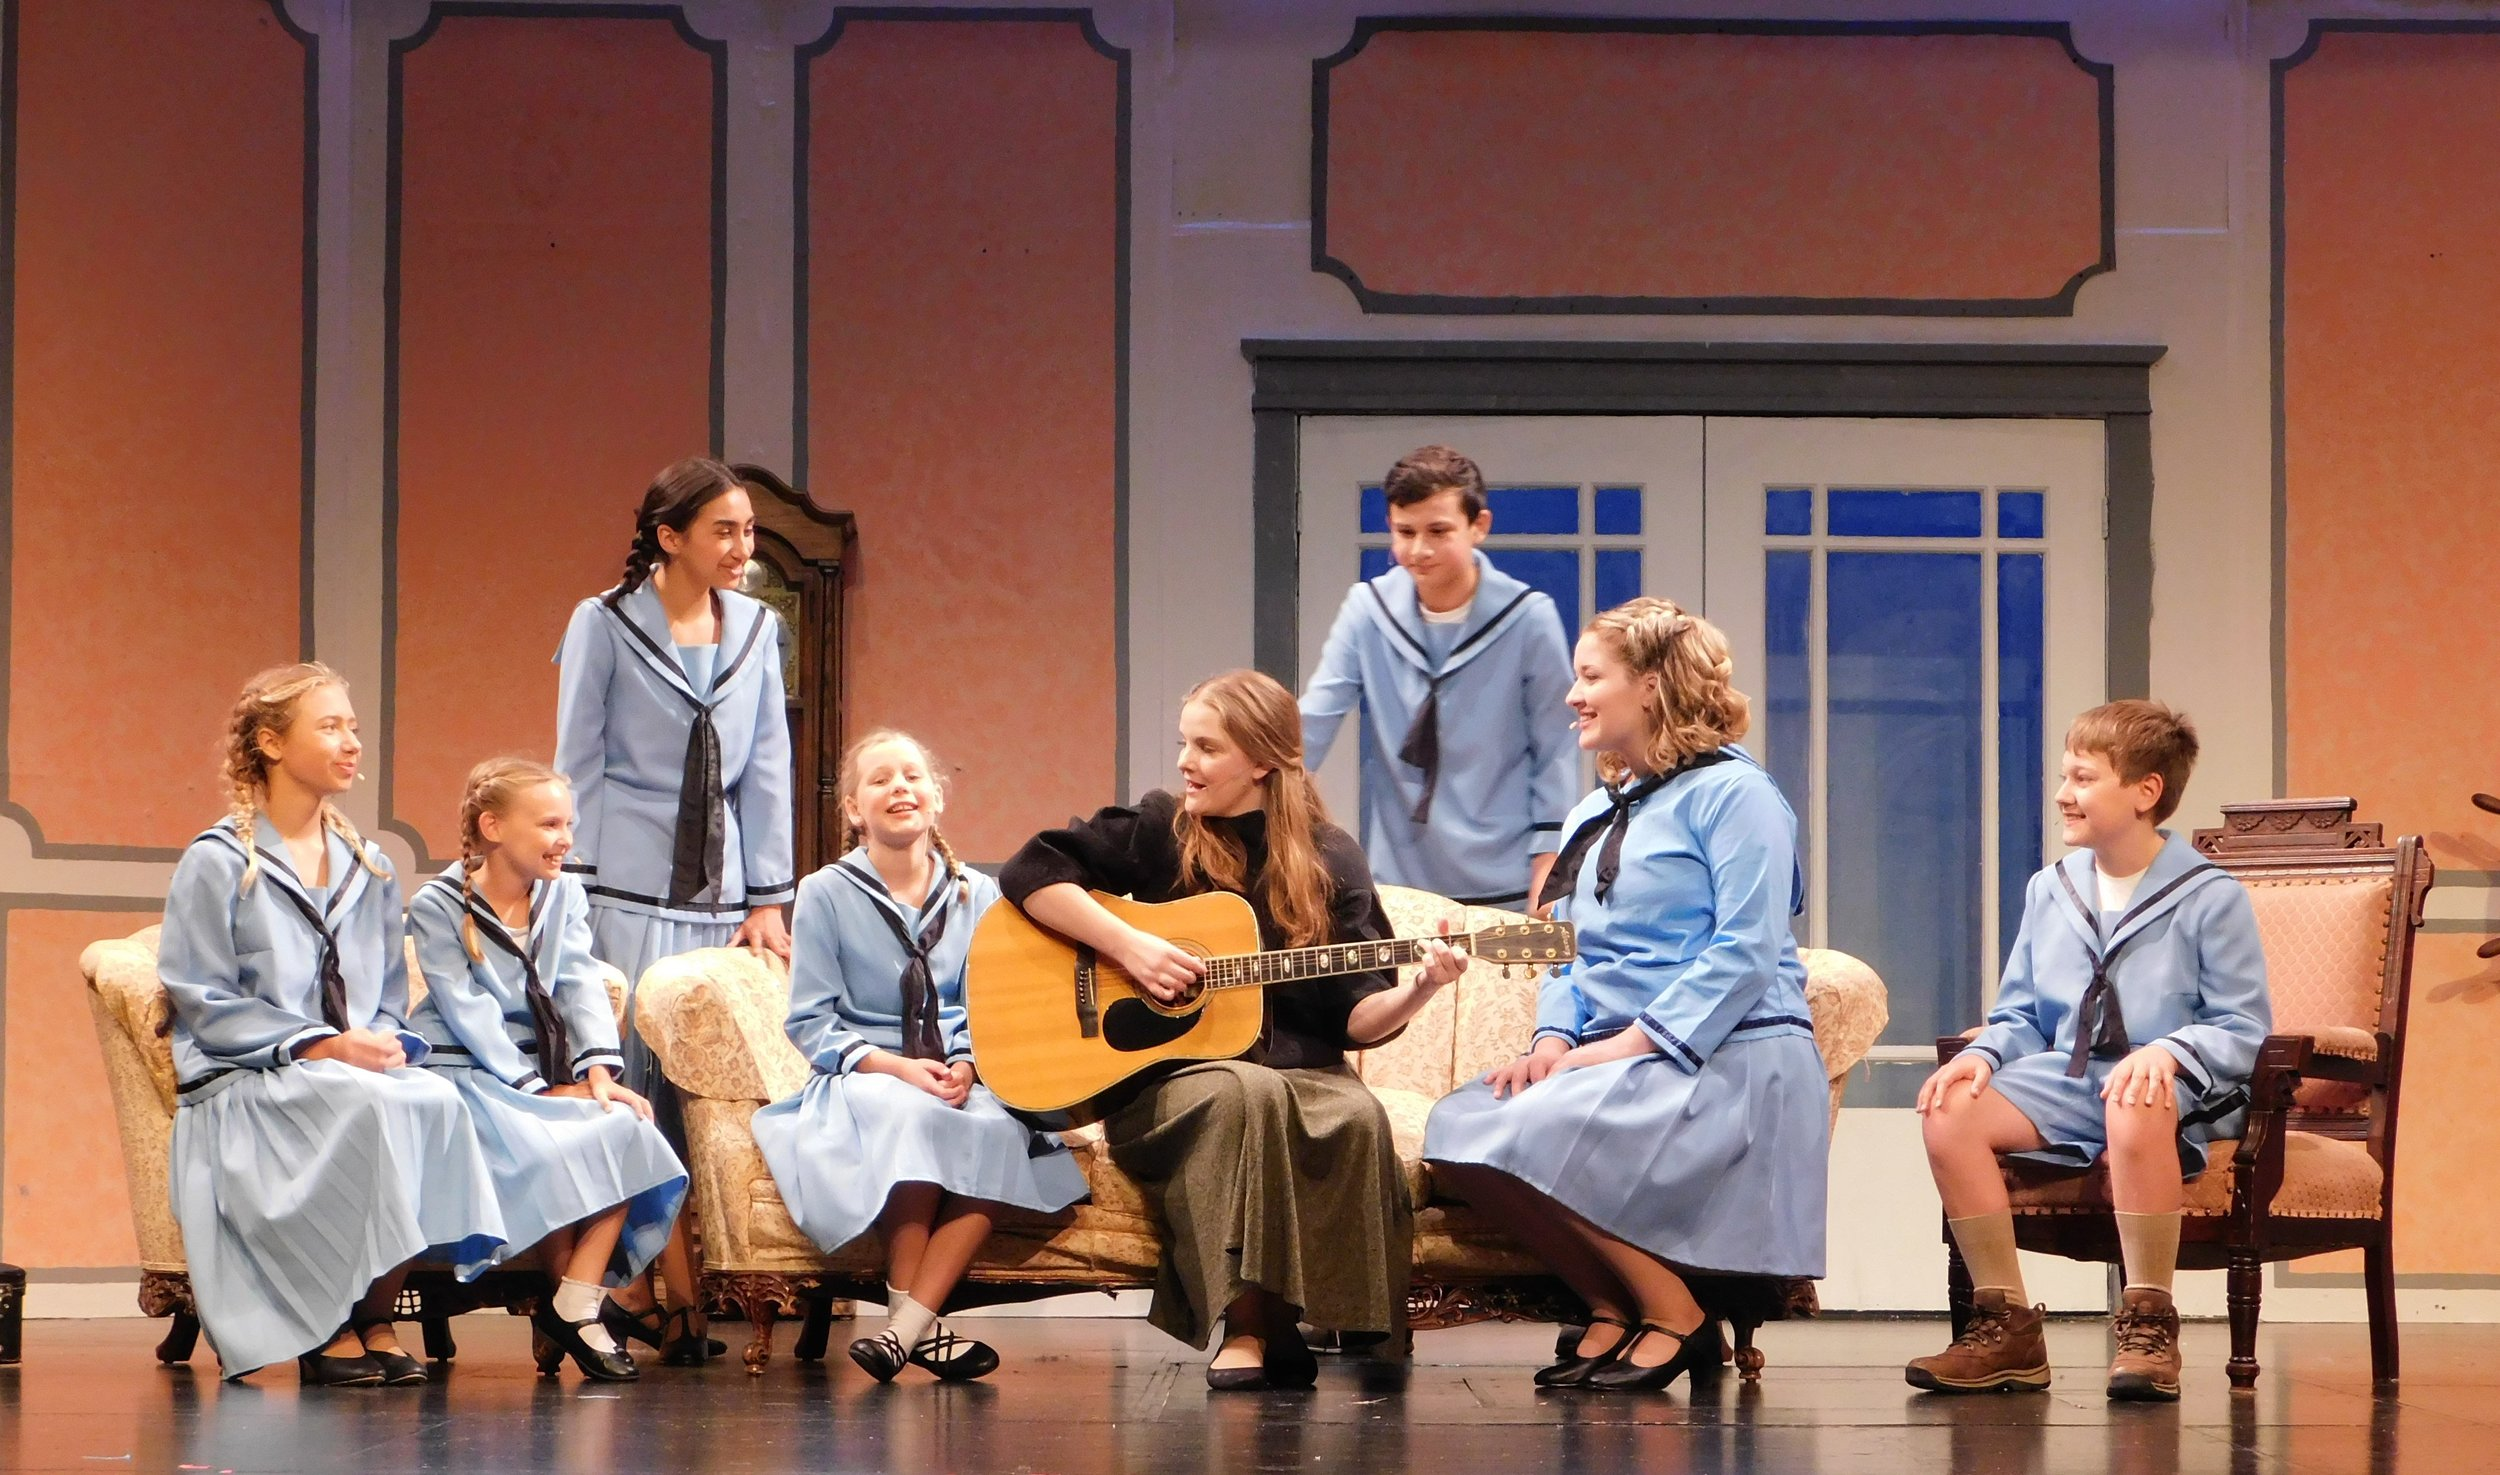 "Maria (Susannah Thorngate) gives a music lesson surrounded by the von Trapp children, from left, Brigitta (Lilli Graesing), Gretl (Anna Gerke), Louis (Hannah Filter), Marta (Natalie Krogwold), Frederich (Aaron Economy), Liesl (Sarah Melcher) and Kurt (Mitchell Anderson) in a scene from West Community Theatre's ""The Sound of Music."""